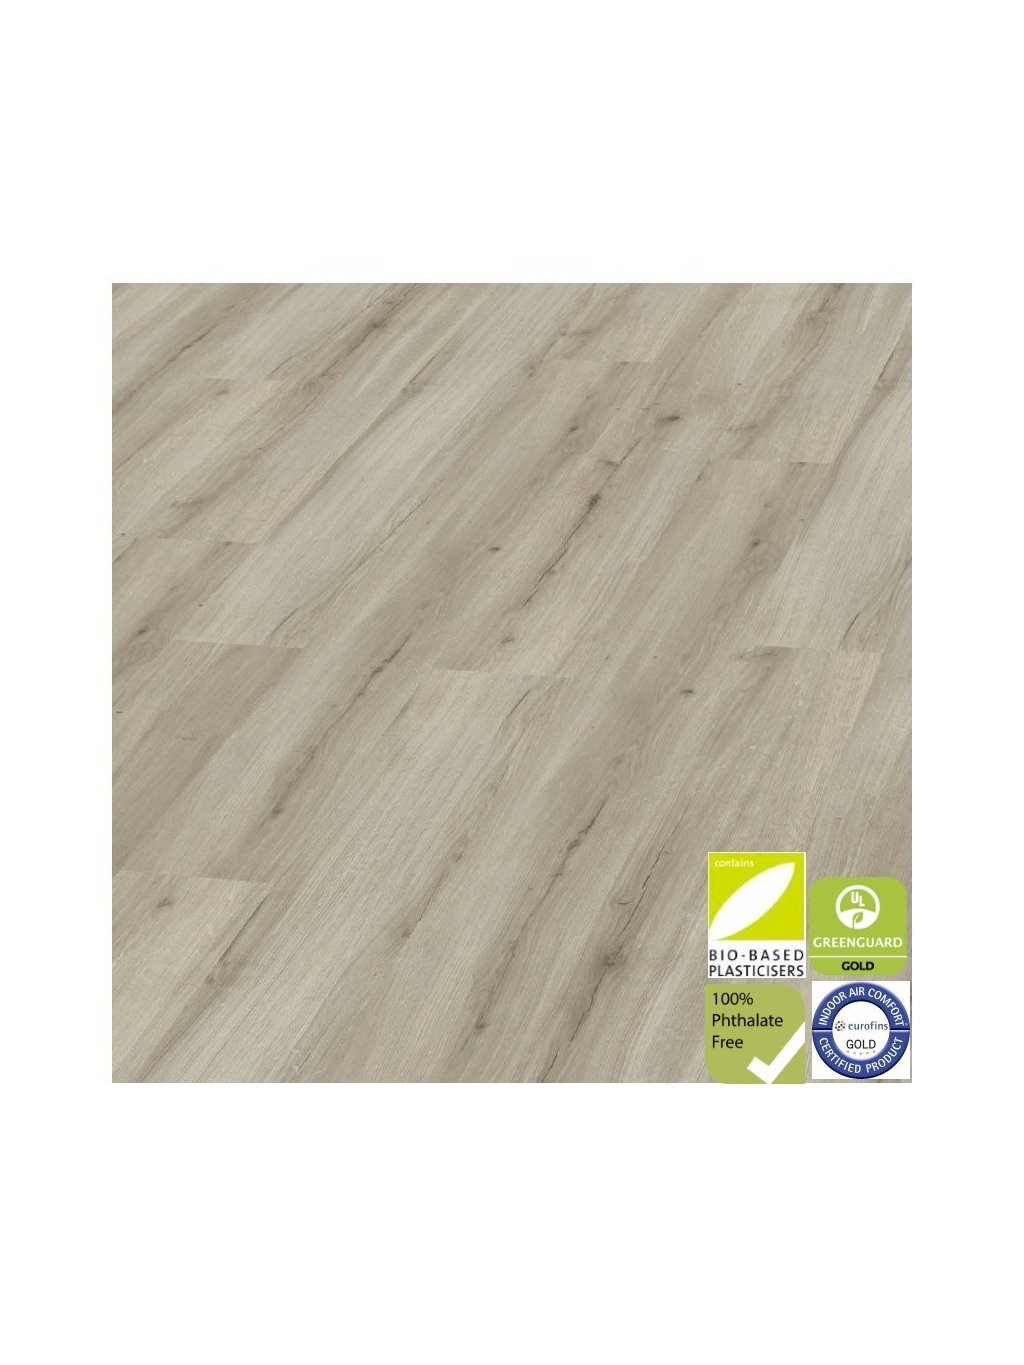 n2 5982 natural oak washed